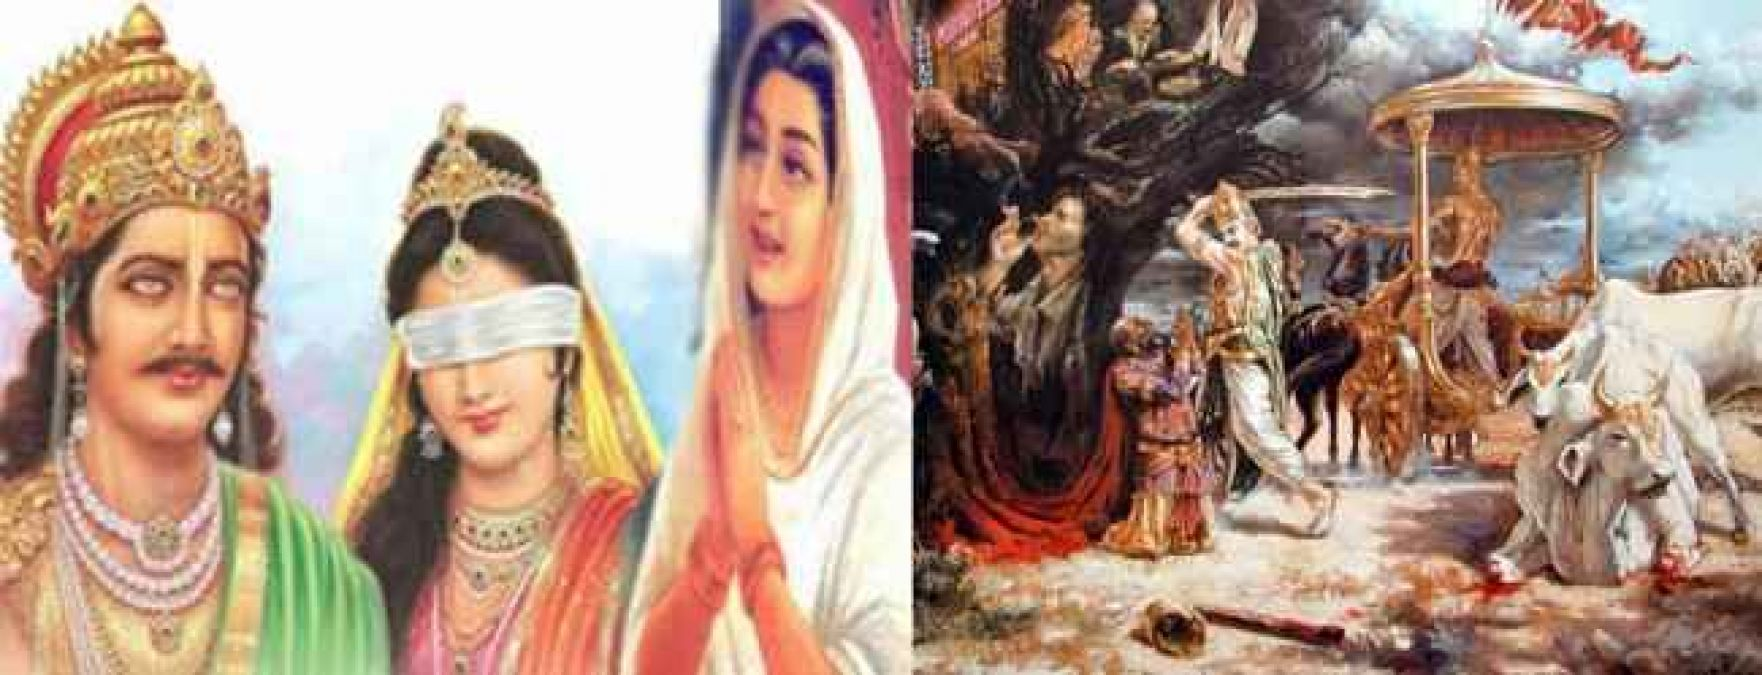 This was the time when Kunti, Dharashtra and Gandhari of the Mahabharata died